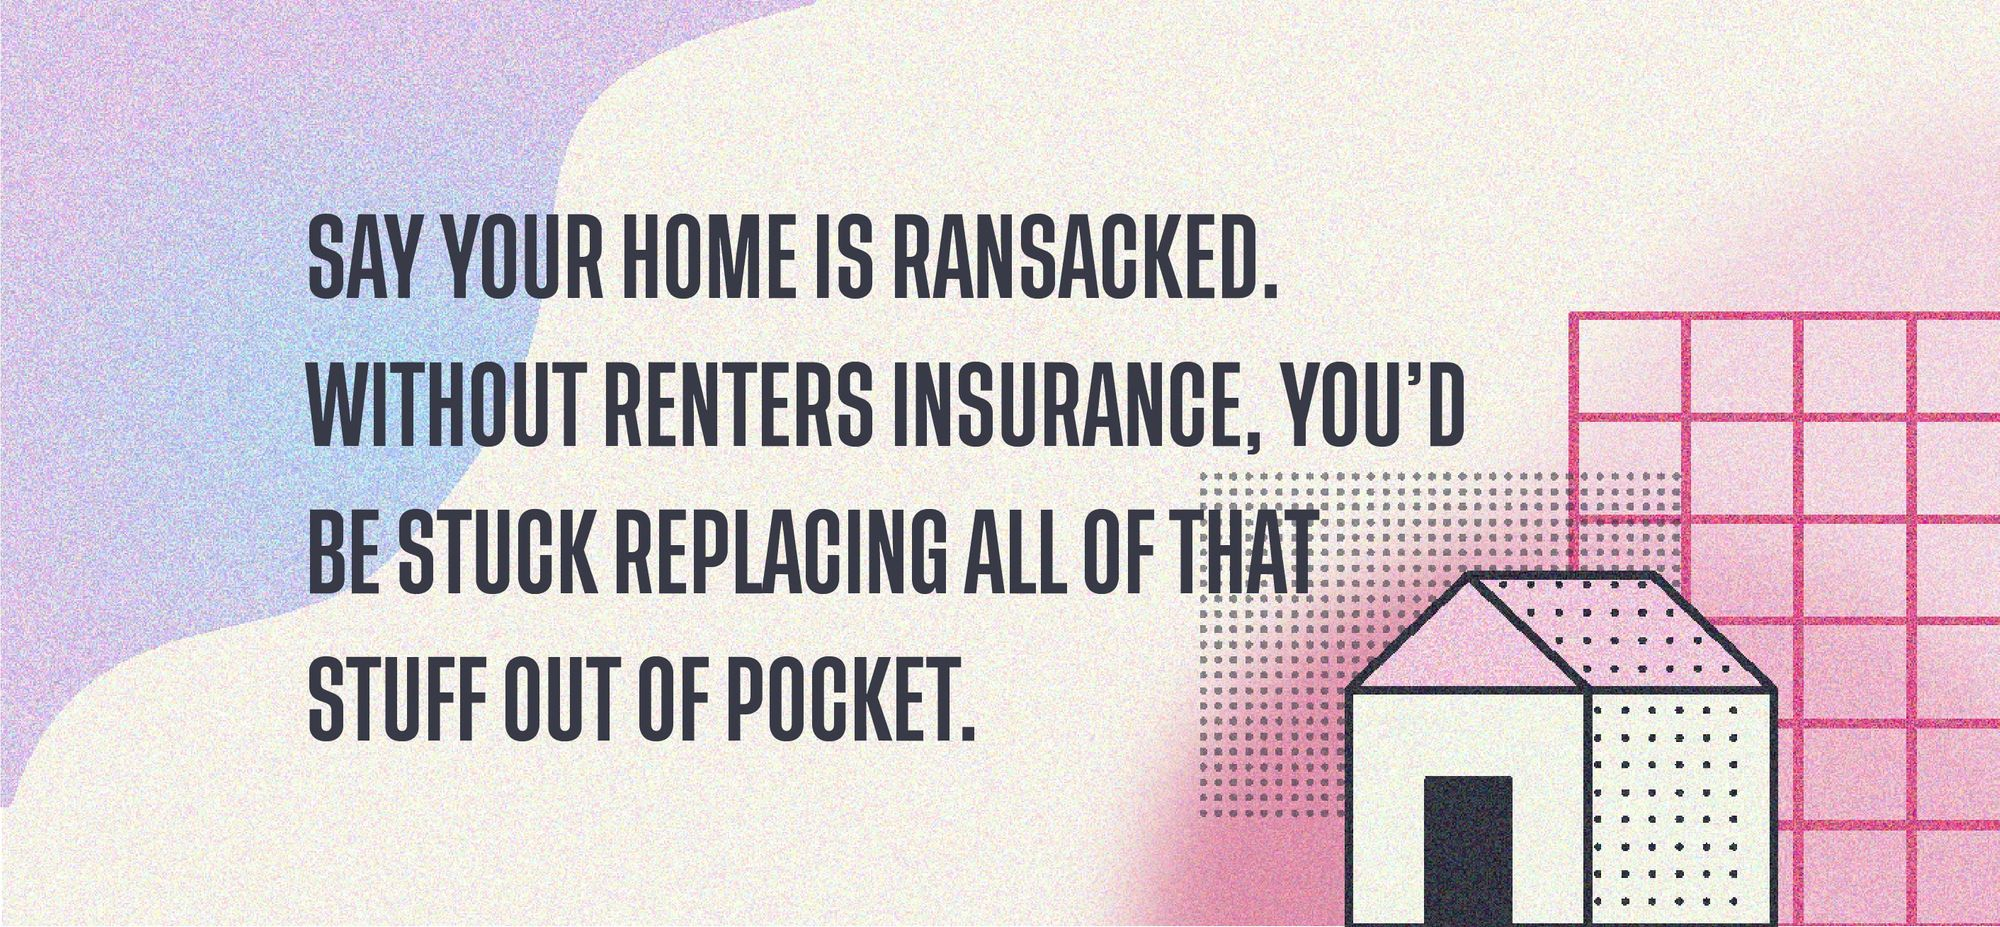 Say your home is ransacked. Without renters insurance, you'd be stuck replacing all of that stuff out of pocket.